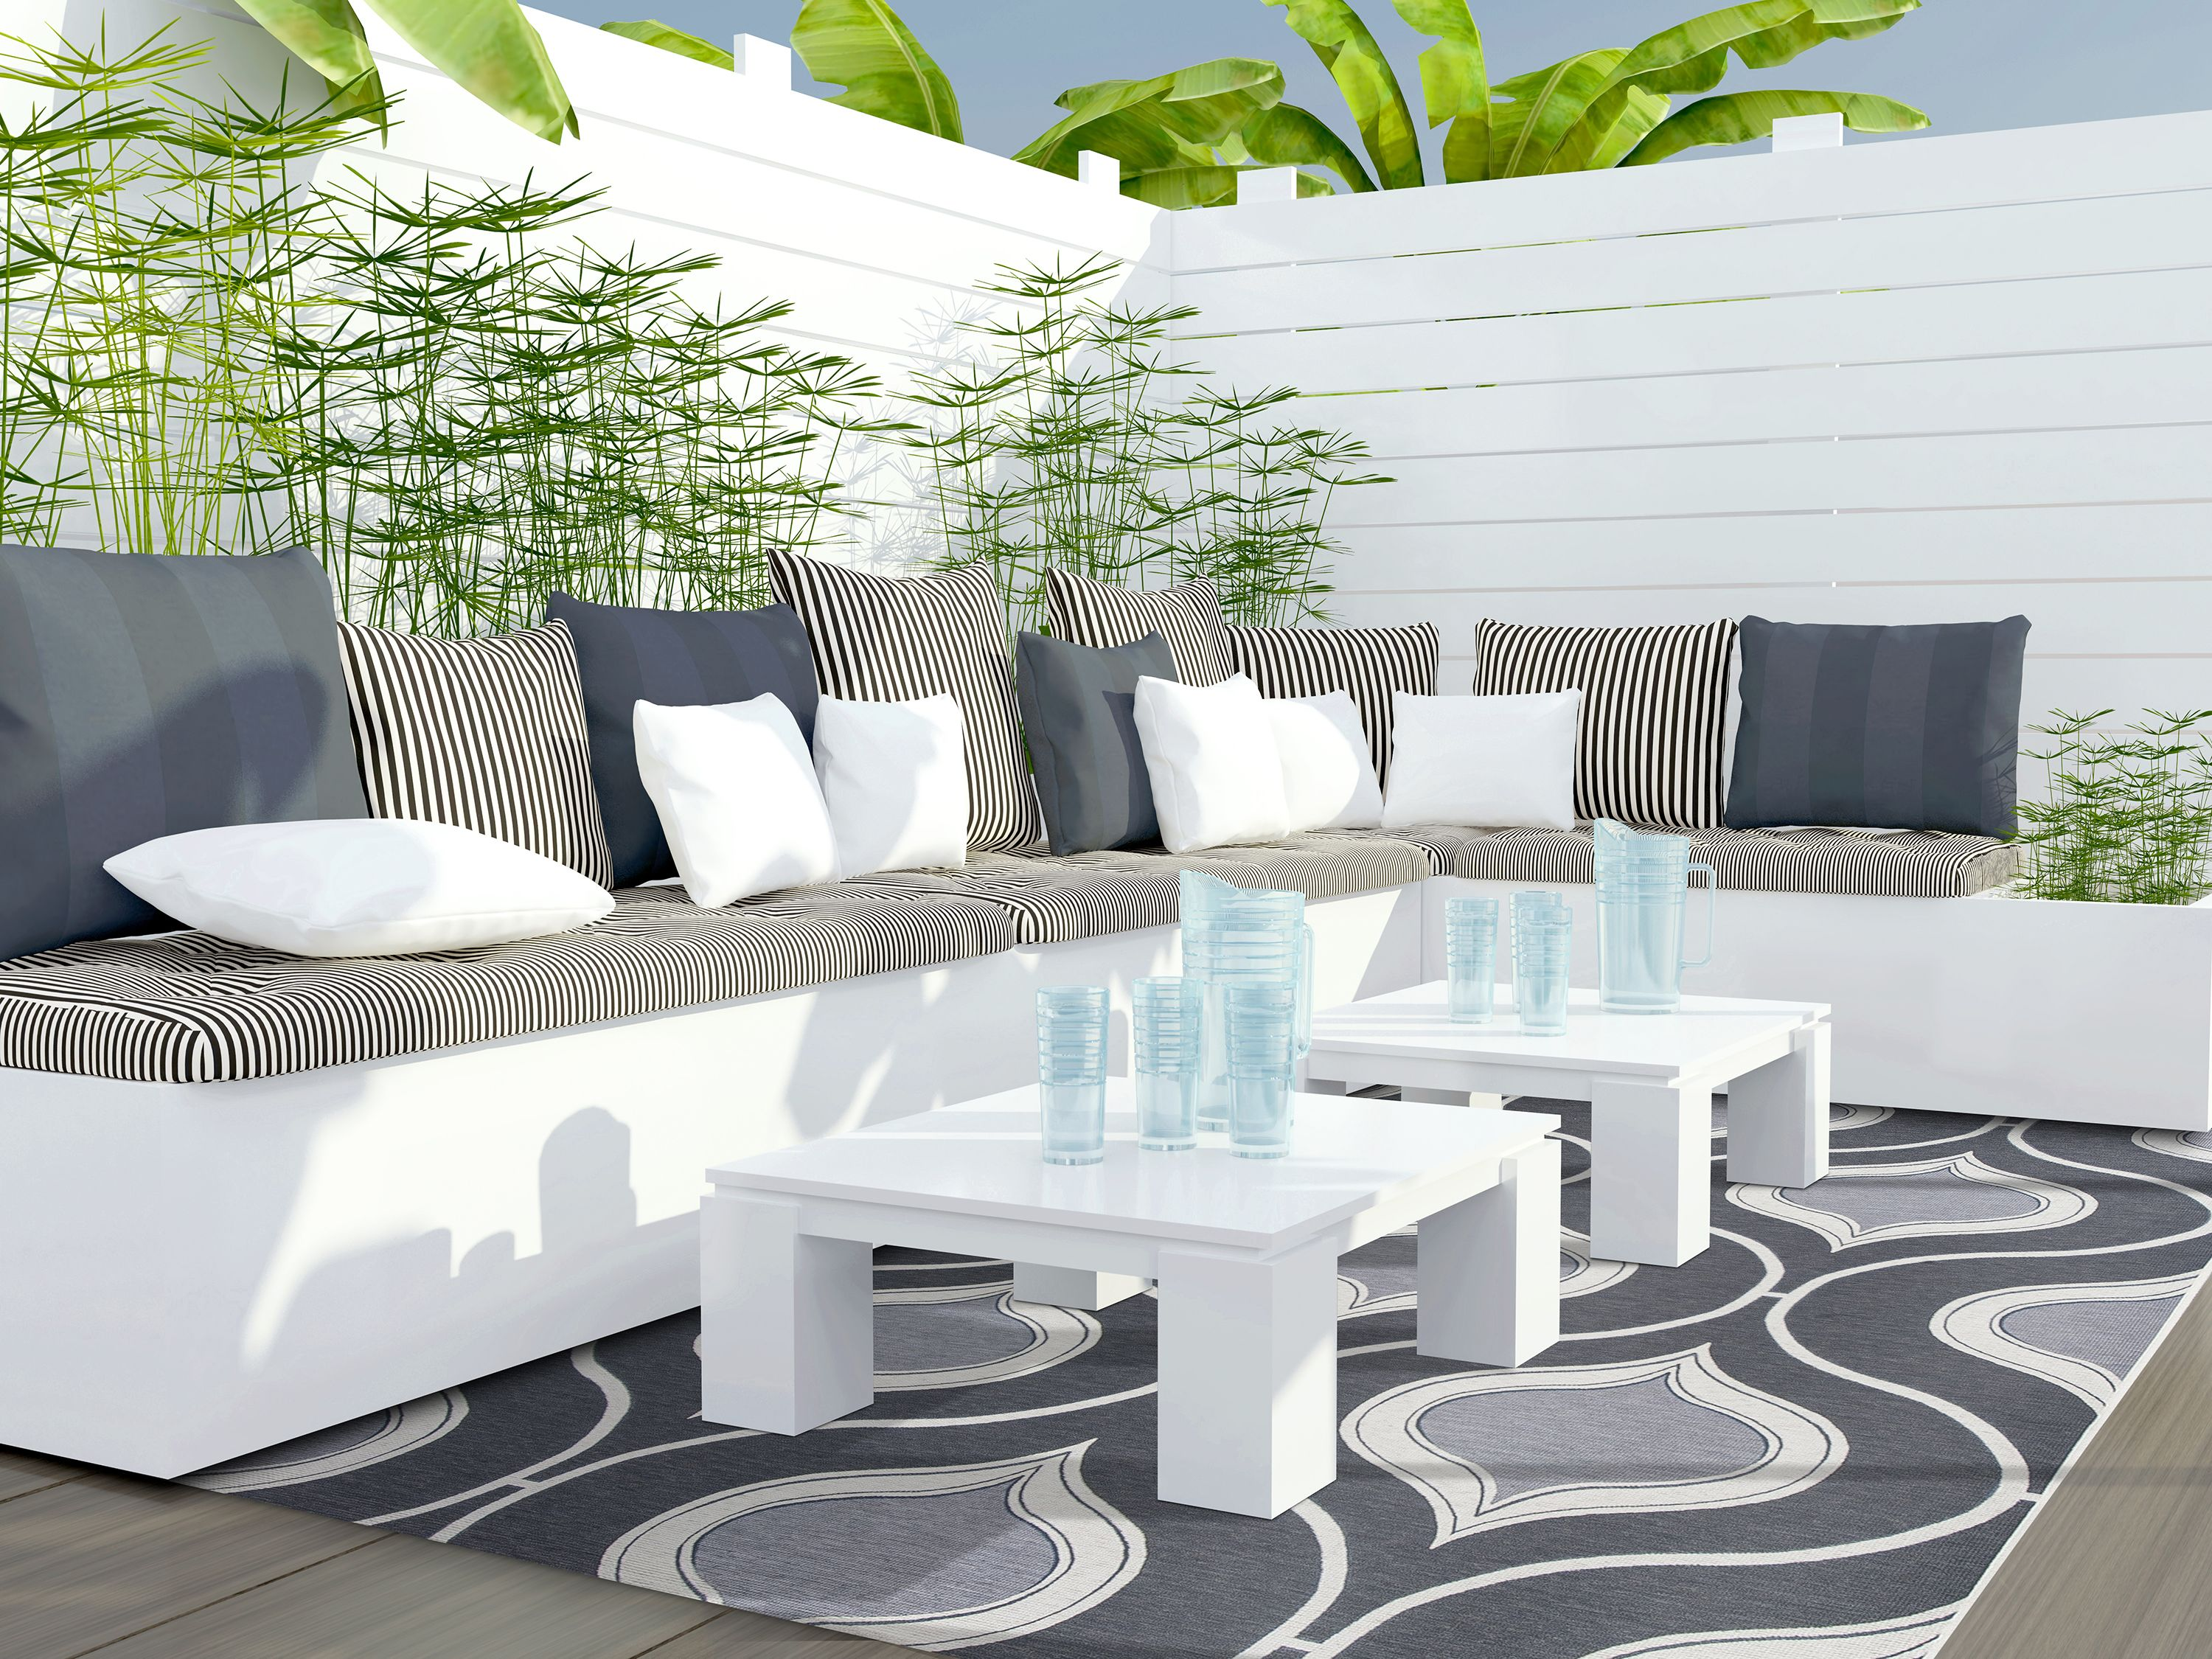 Liven Up Your Patio Or Lanai With A Beautiful Outdoor Rug Hundreds In Stock Daily And Multiple Sizes Available W Patio Seating Area Patio Rugs Patio Seating